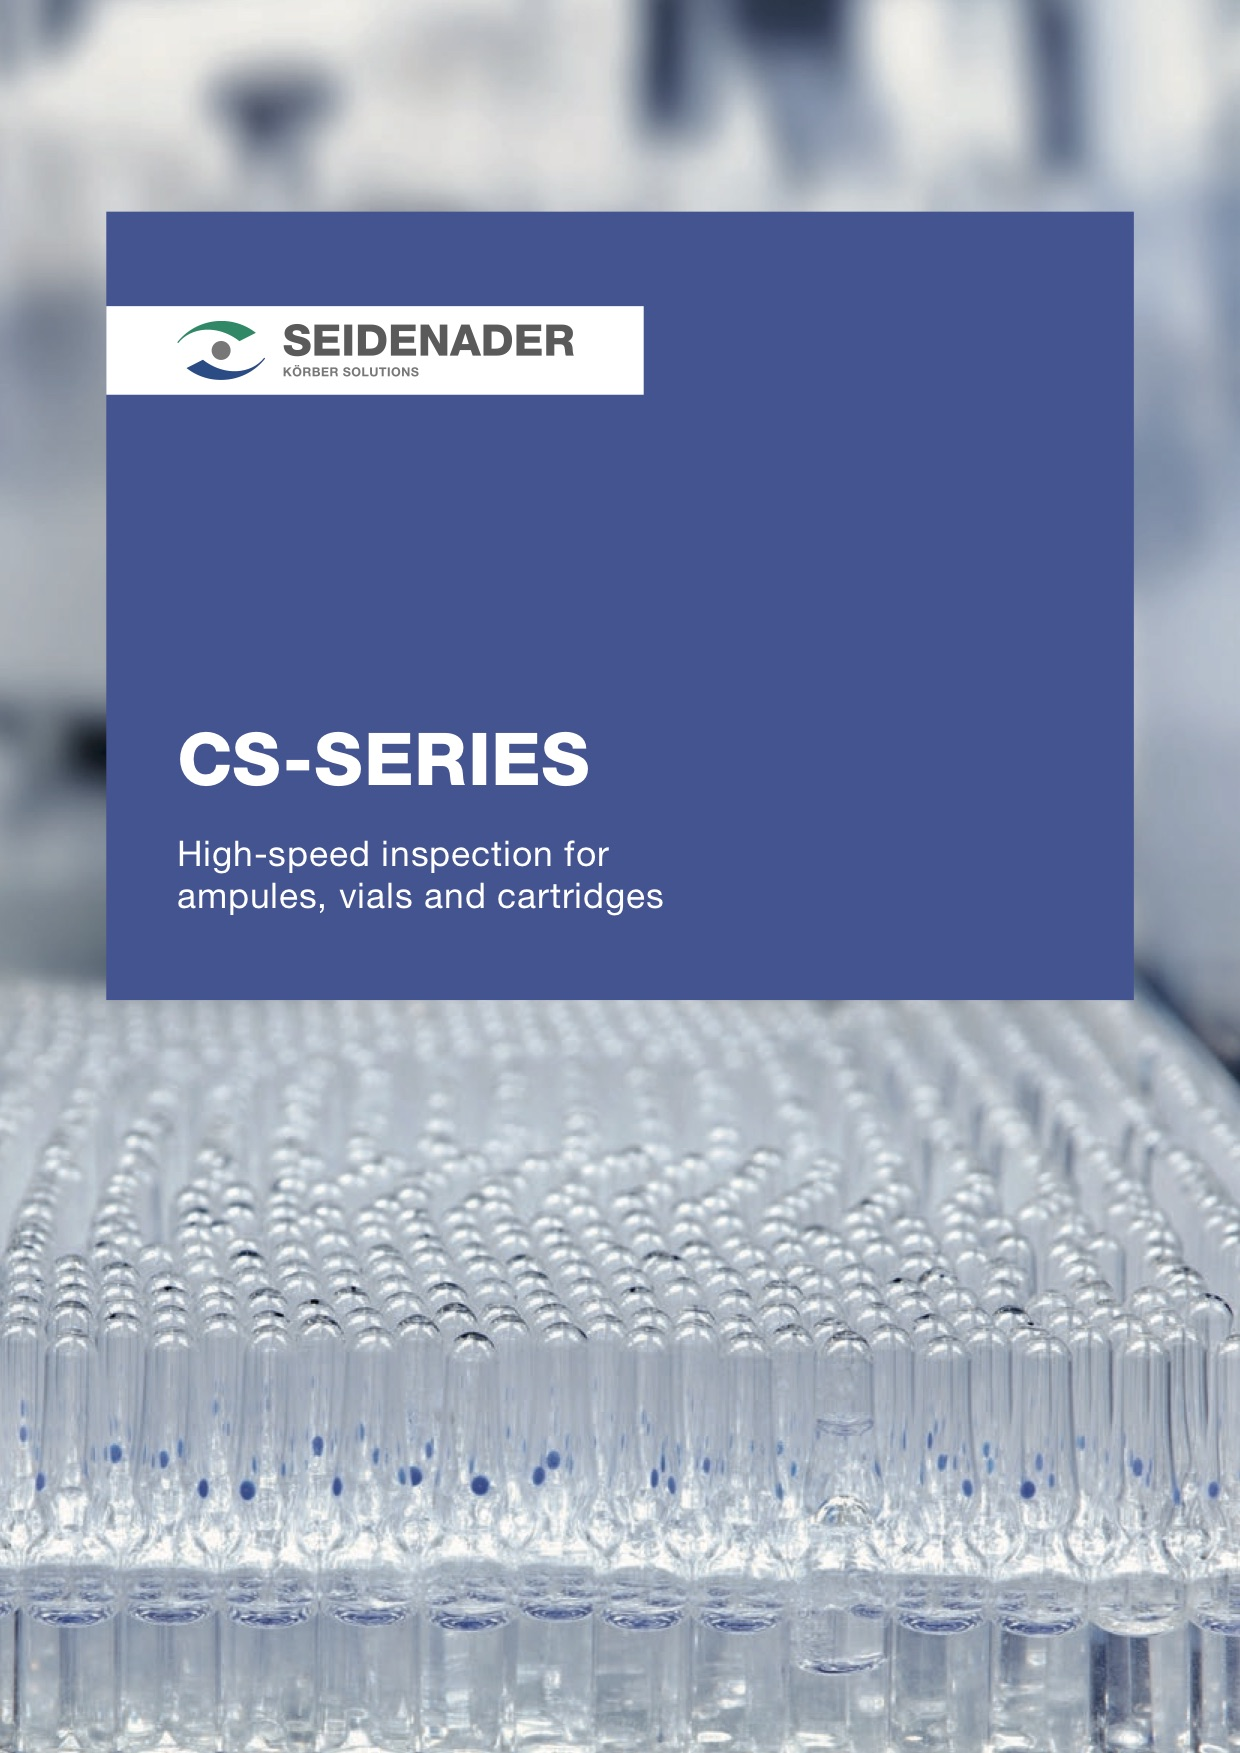 Seidenader_Automatic-Inspection_CS-Series_2018